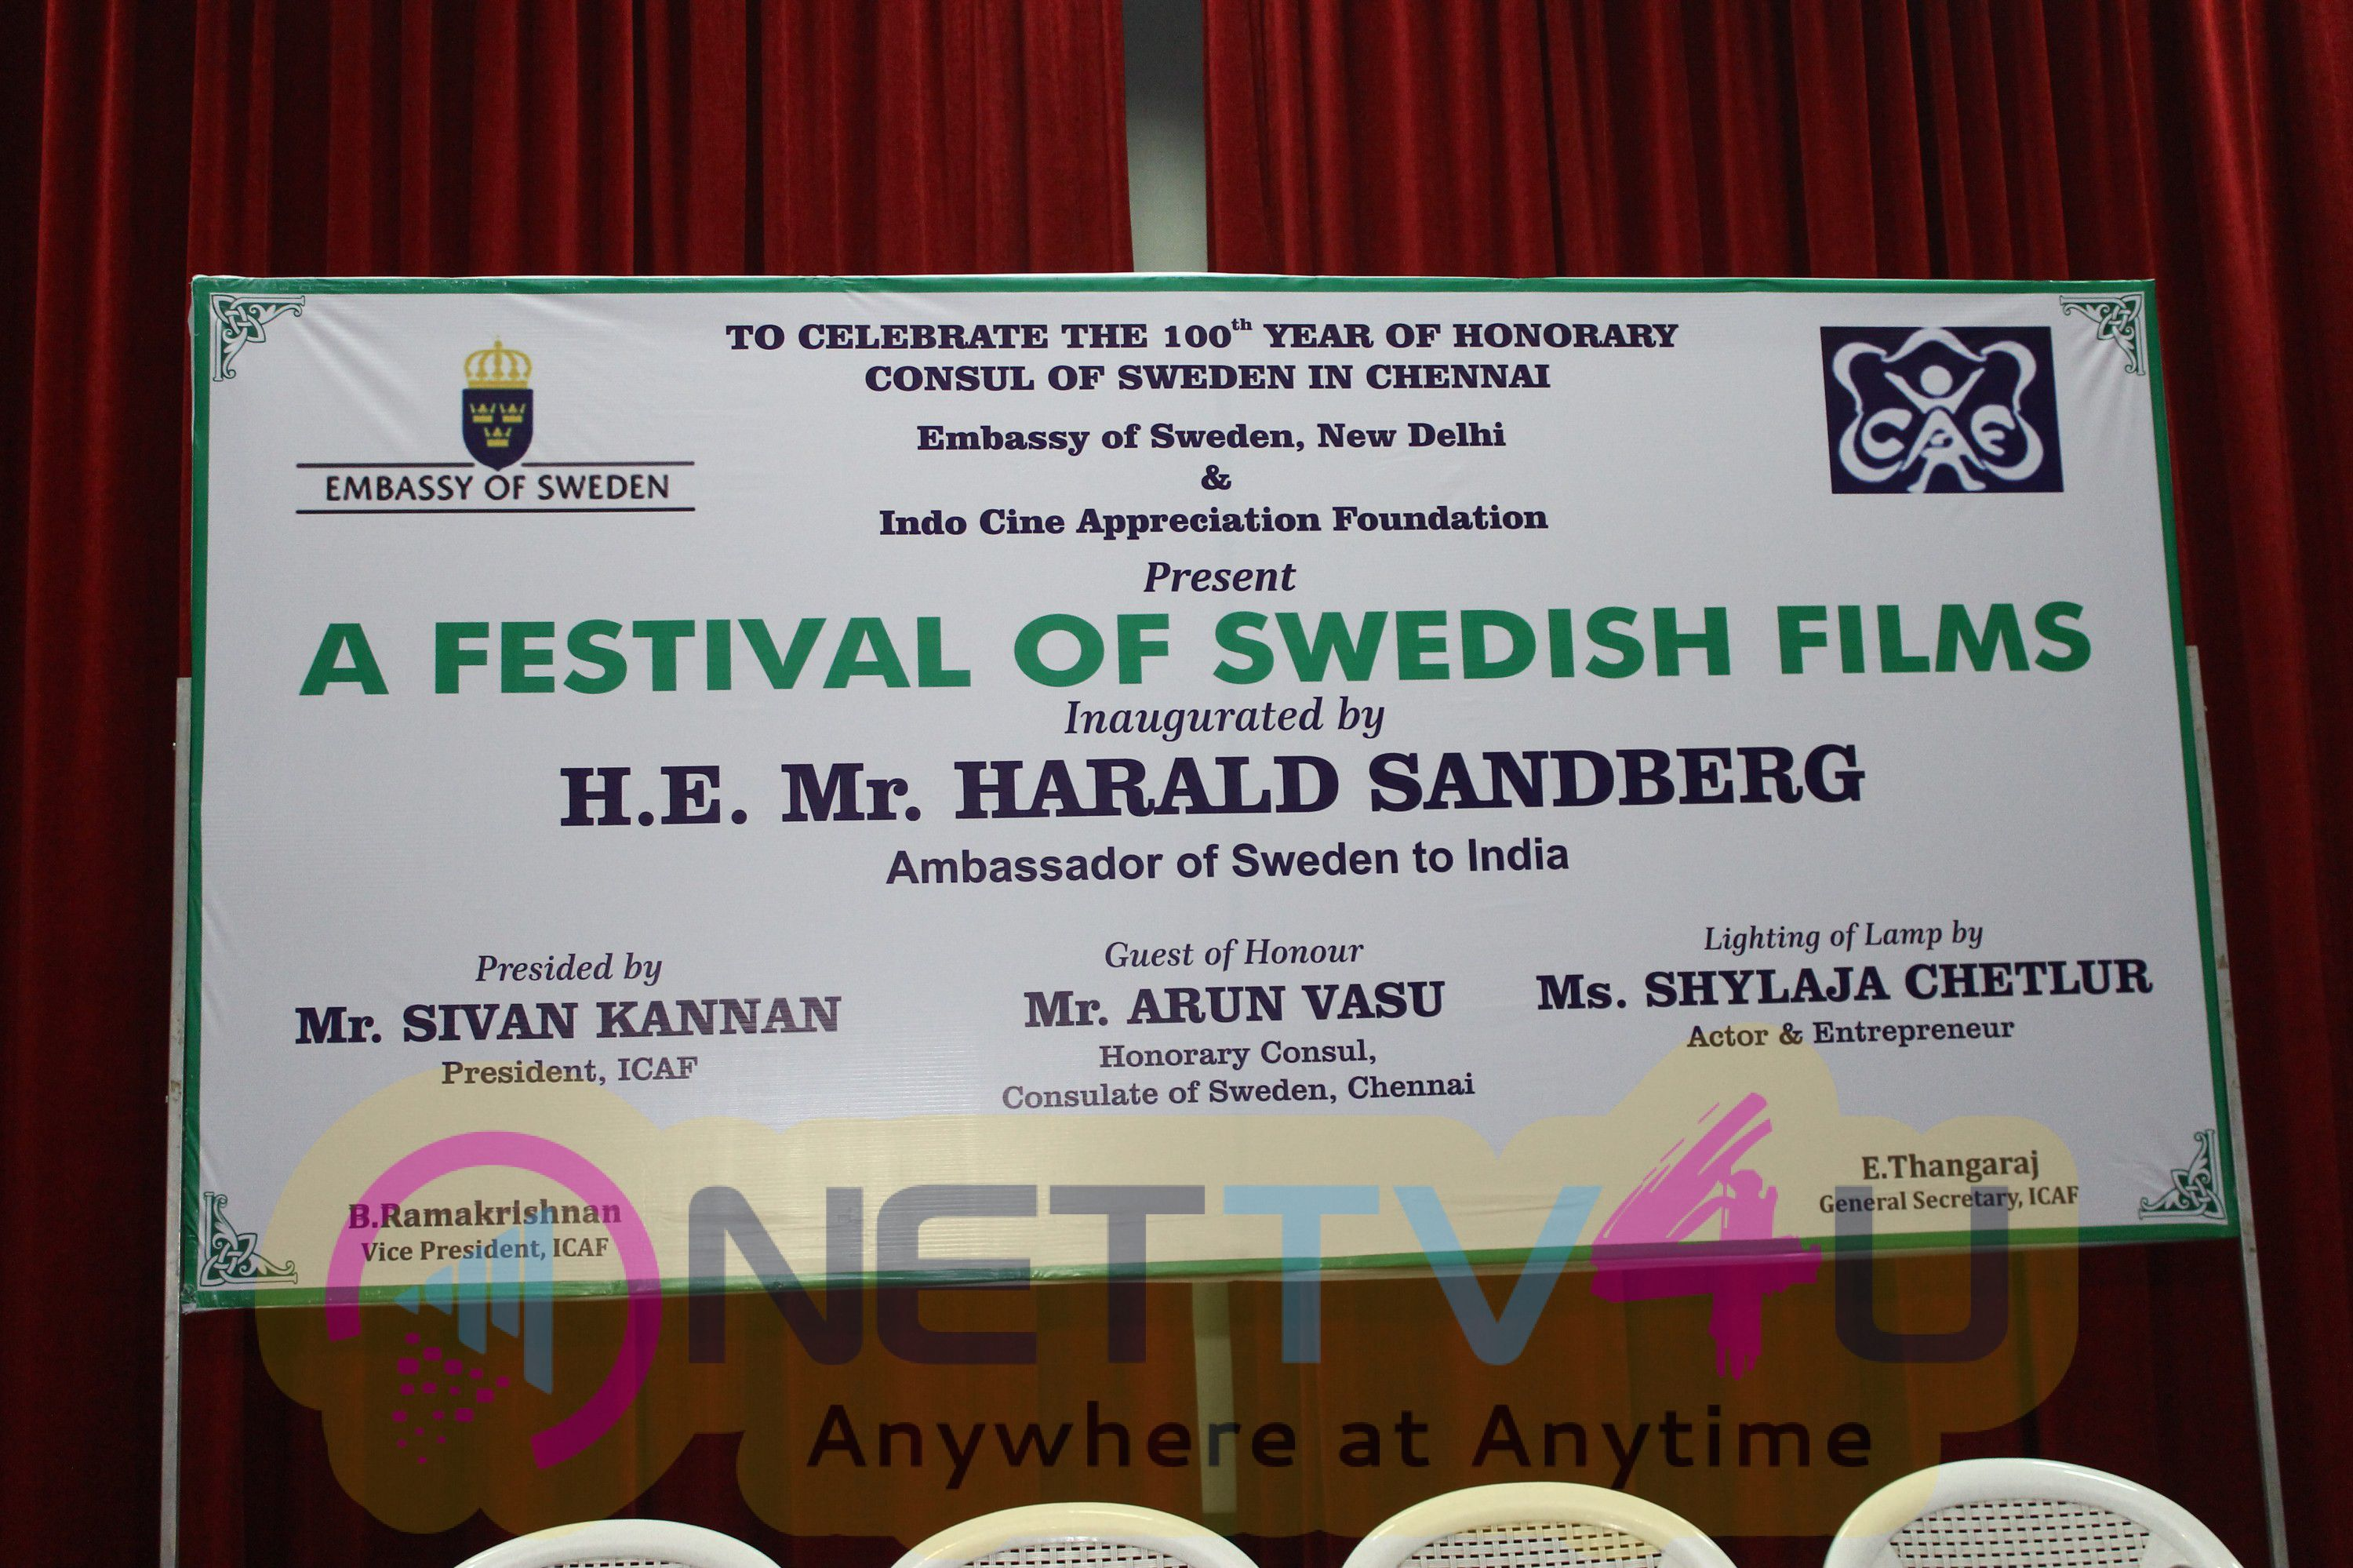 Photos Of Inaugural Function Of A Festival Of Swedish Films